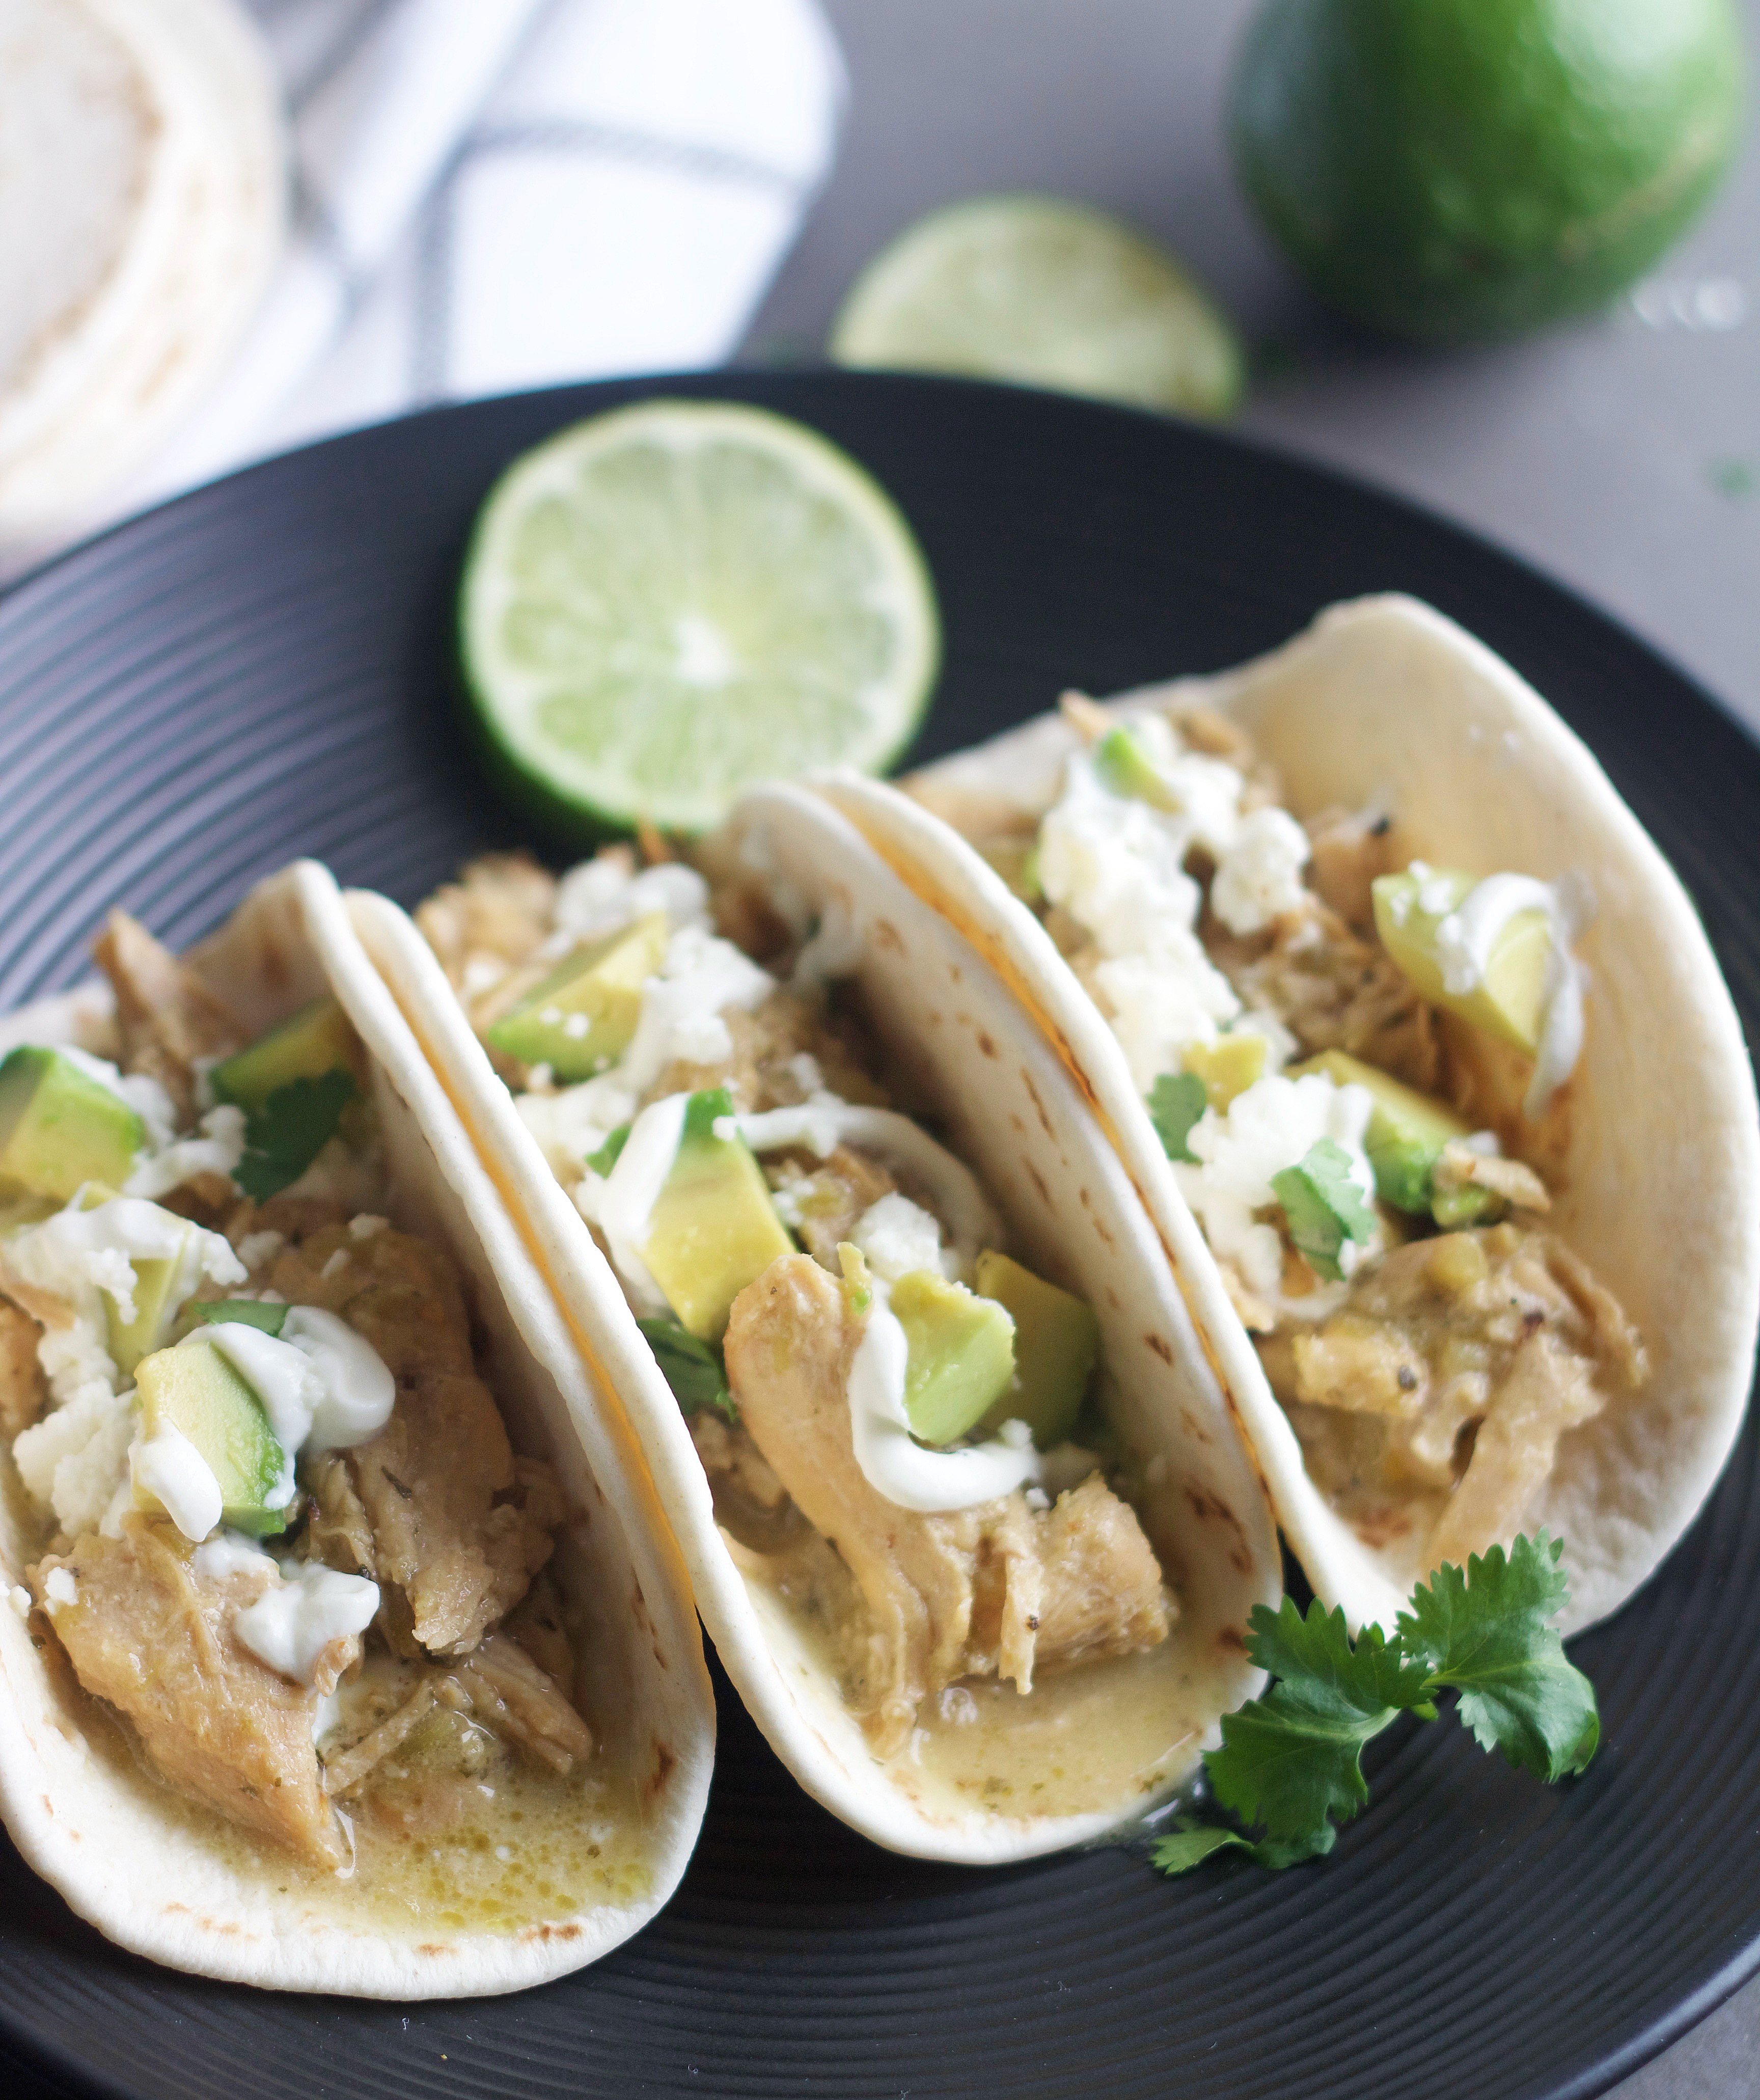 Plate with 3 Zesty Lime Chicken Tacos